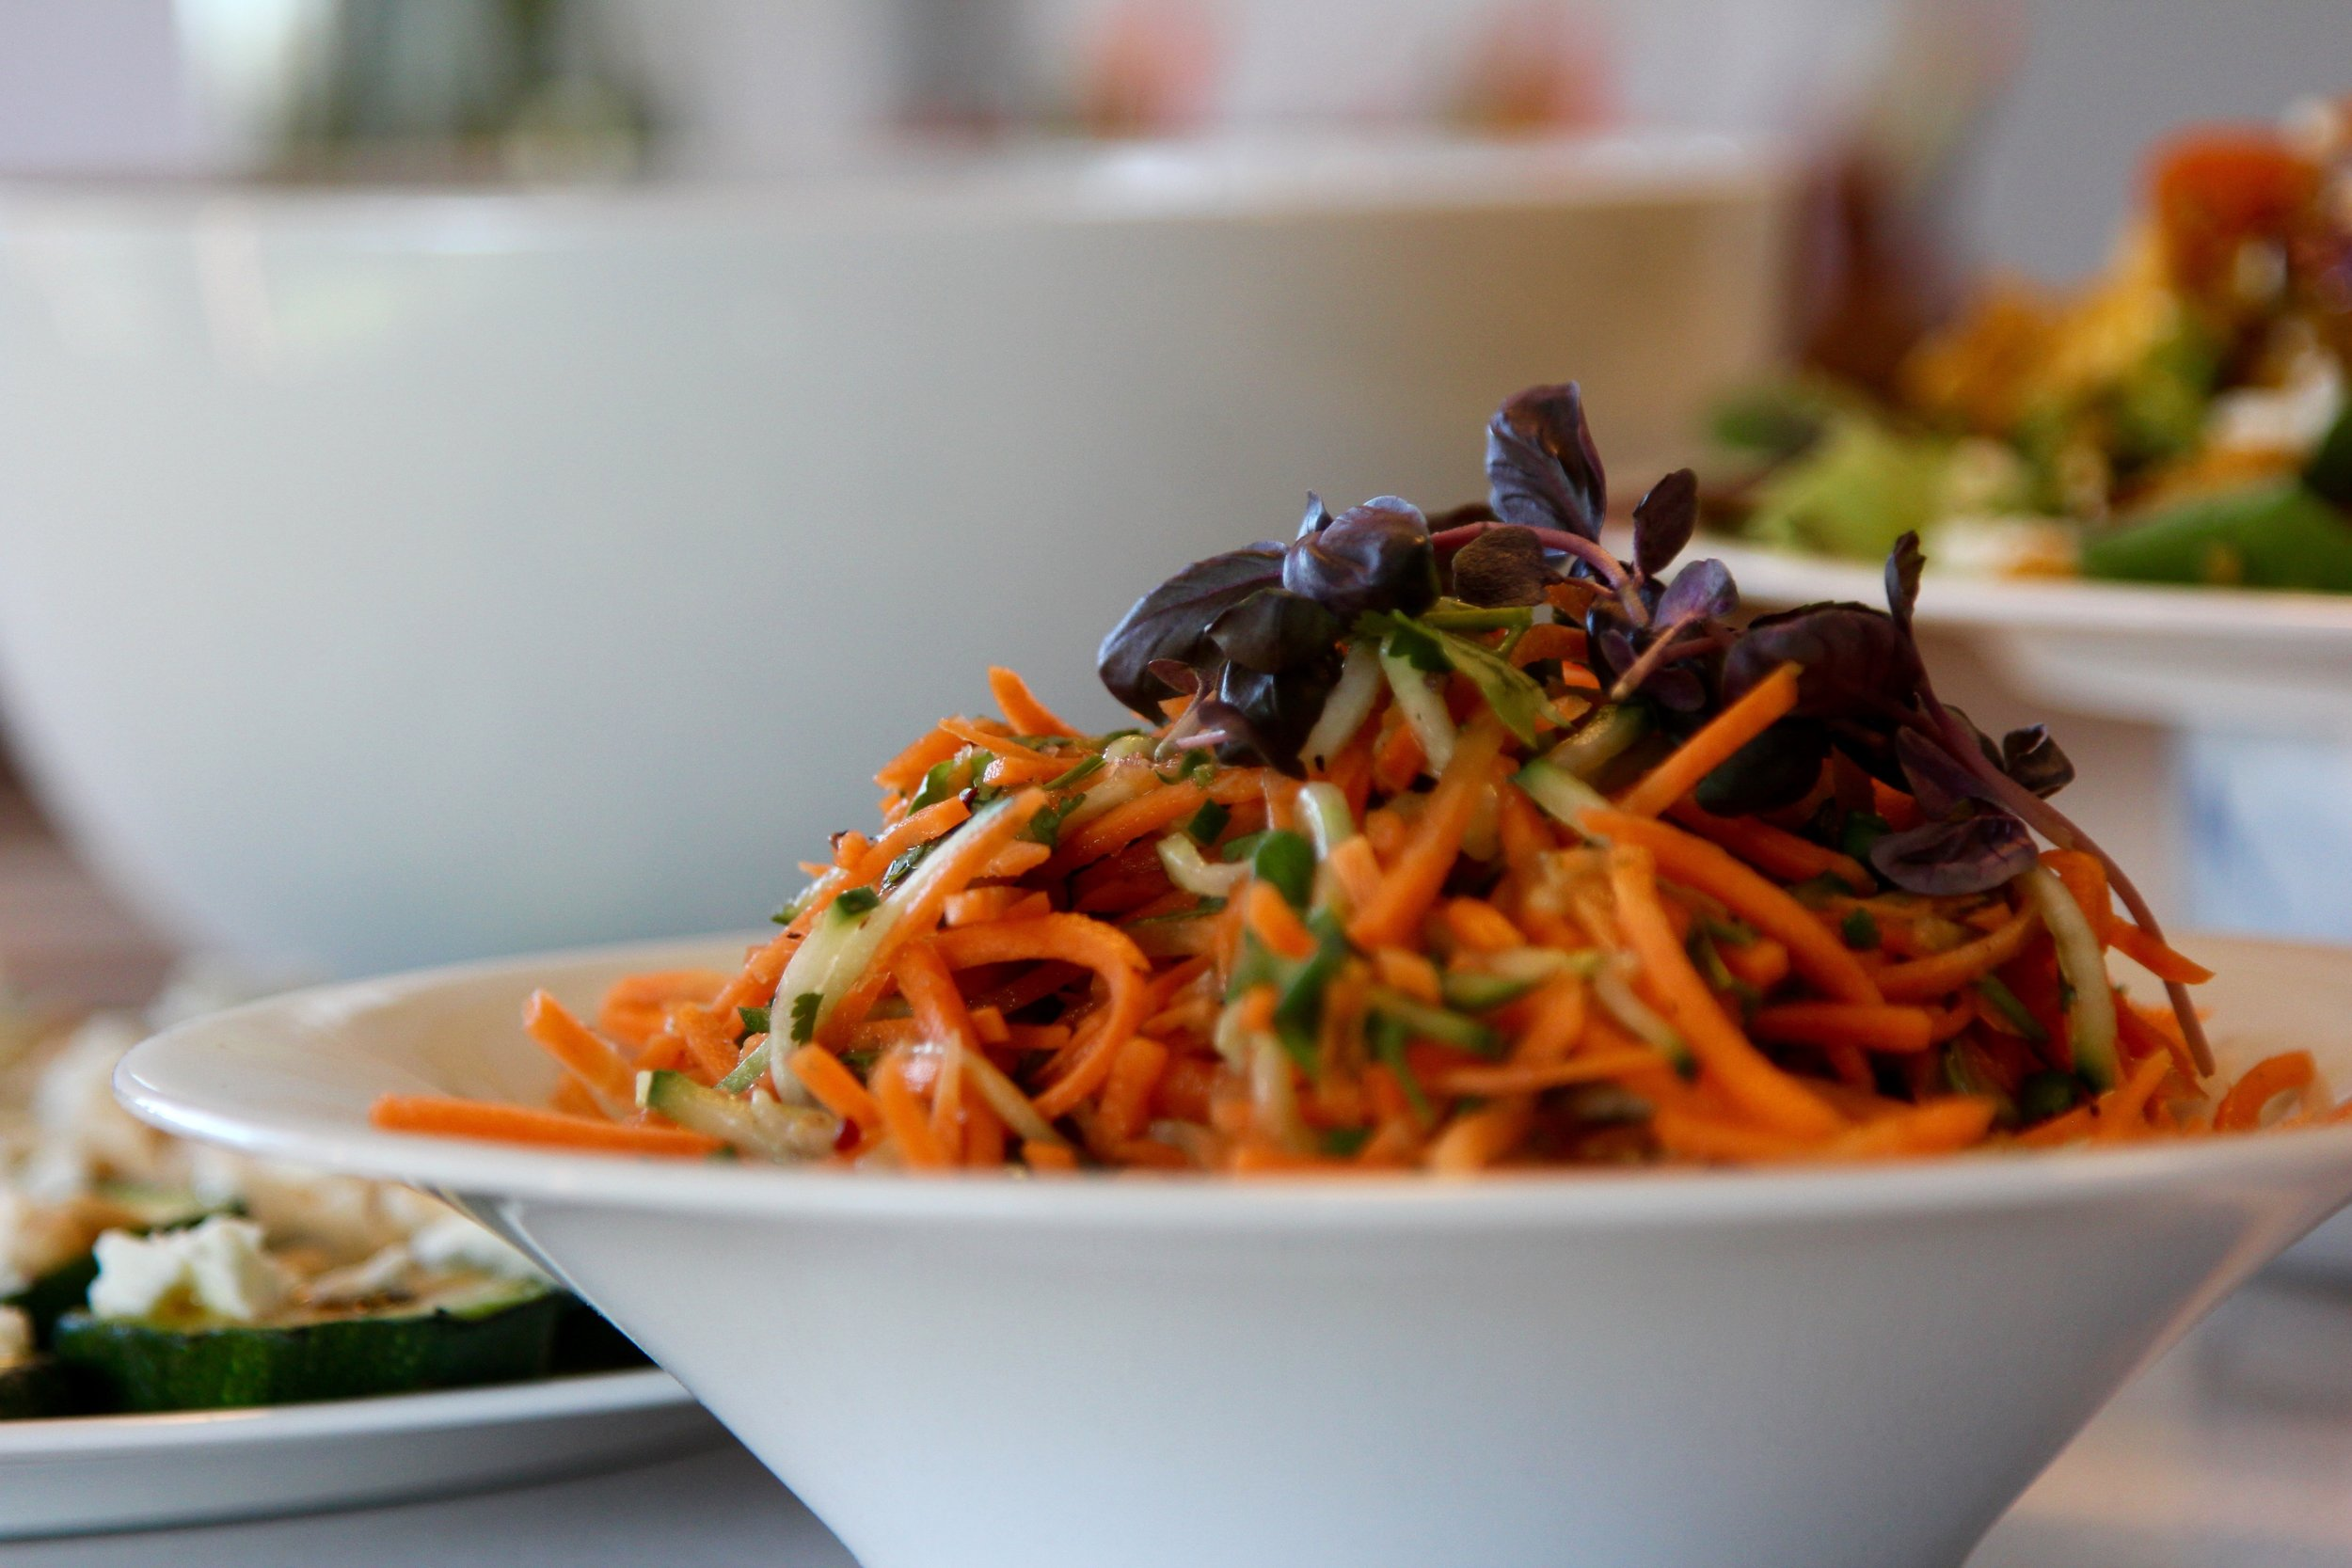 Spicy pickled carrot and cucumber salad